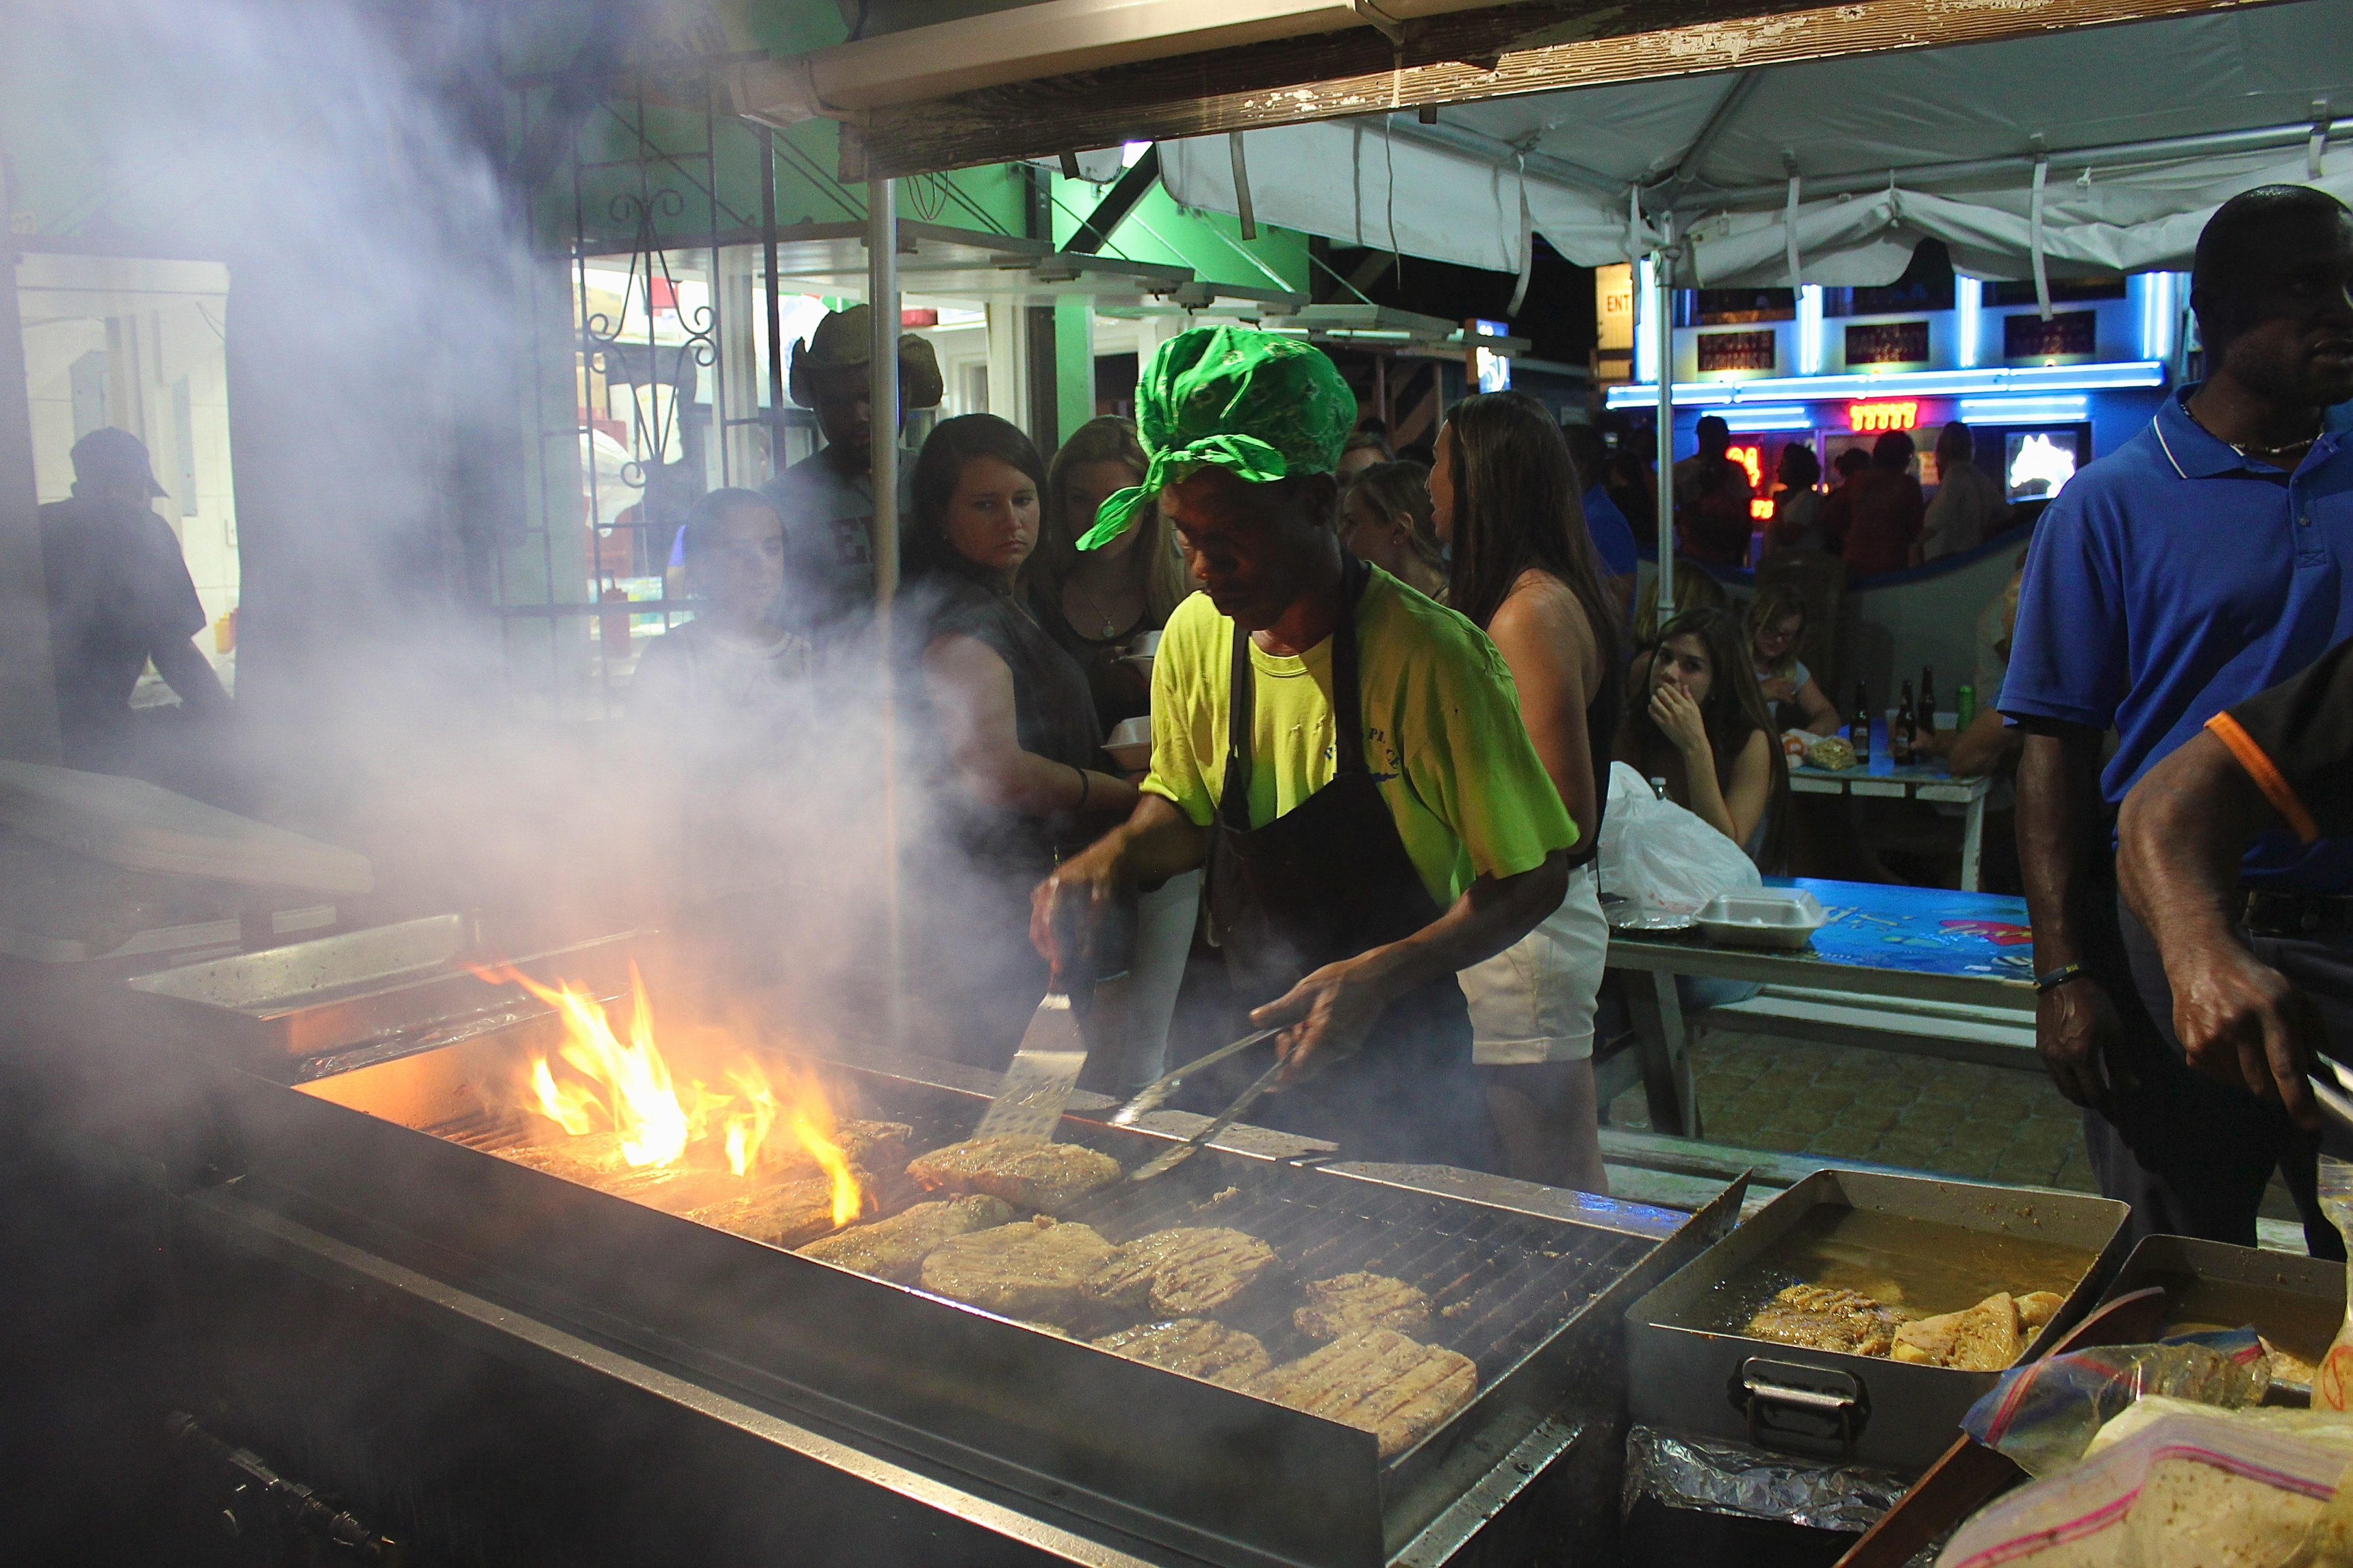 A Bajan cook fires up fish at the popular Oistins stand, Pats Place. Photo by Kimberley Johnson, Ottawa Magazine.